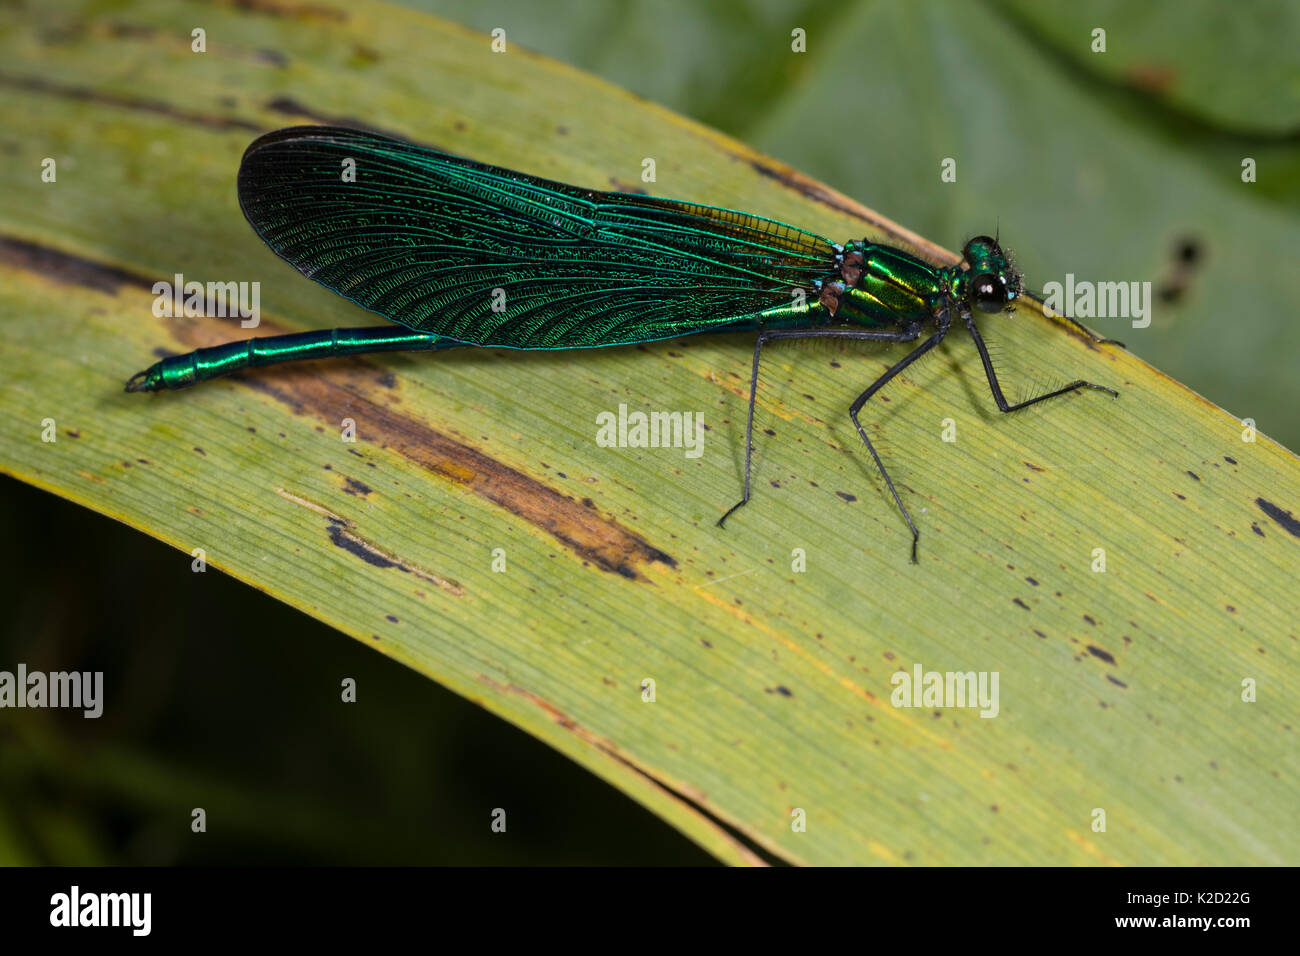 Mature male Beautiful demoiselle damselfly, Calopteryx virgo, showing iridiscent blue green colouration on body Stock Photo